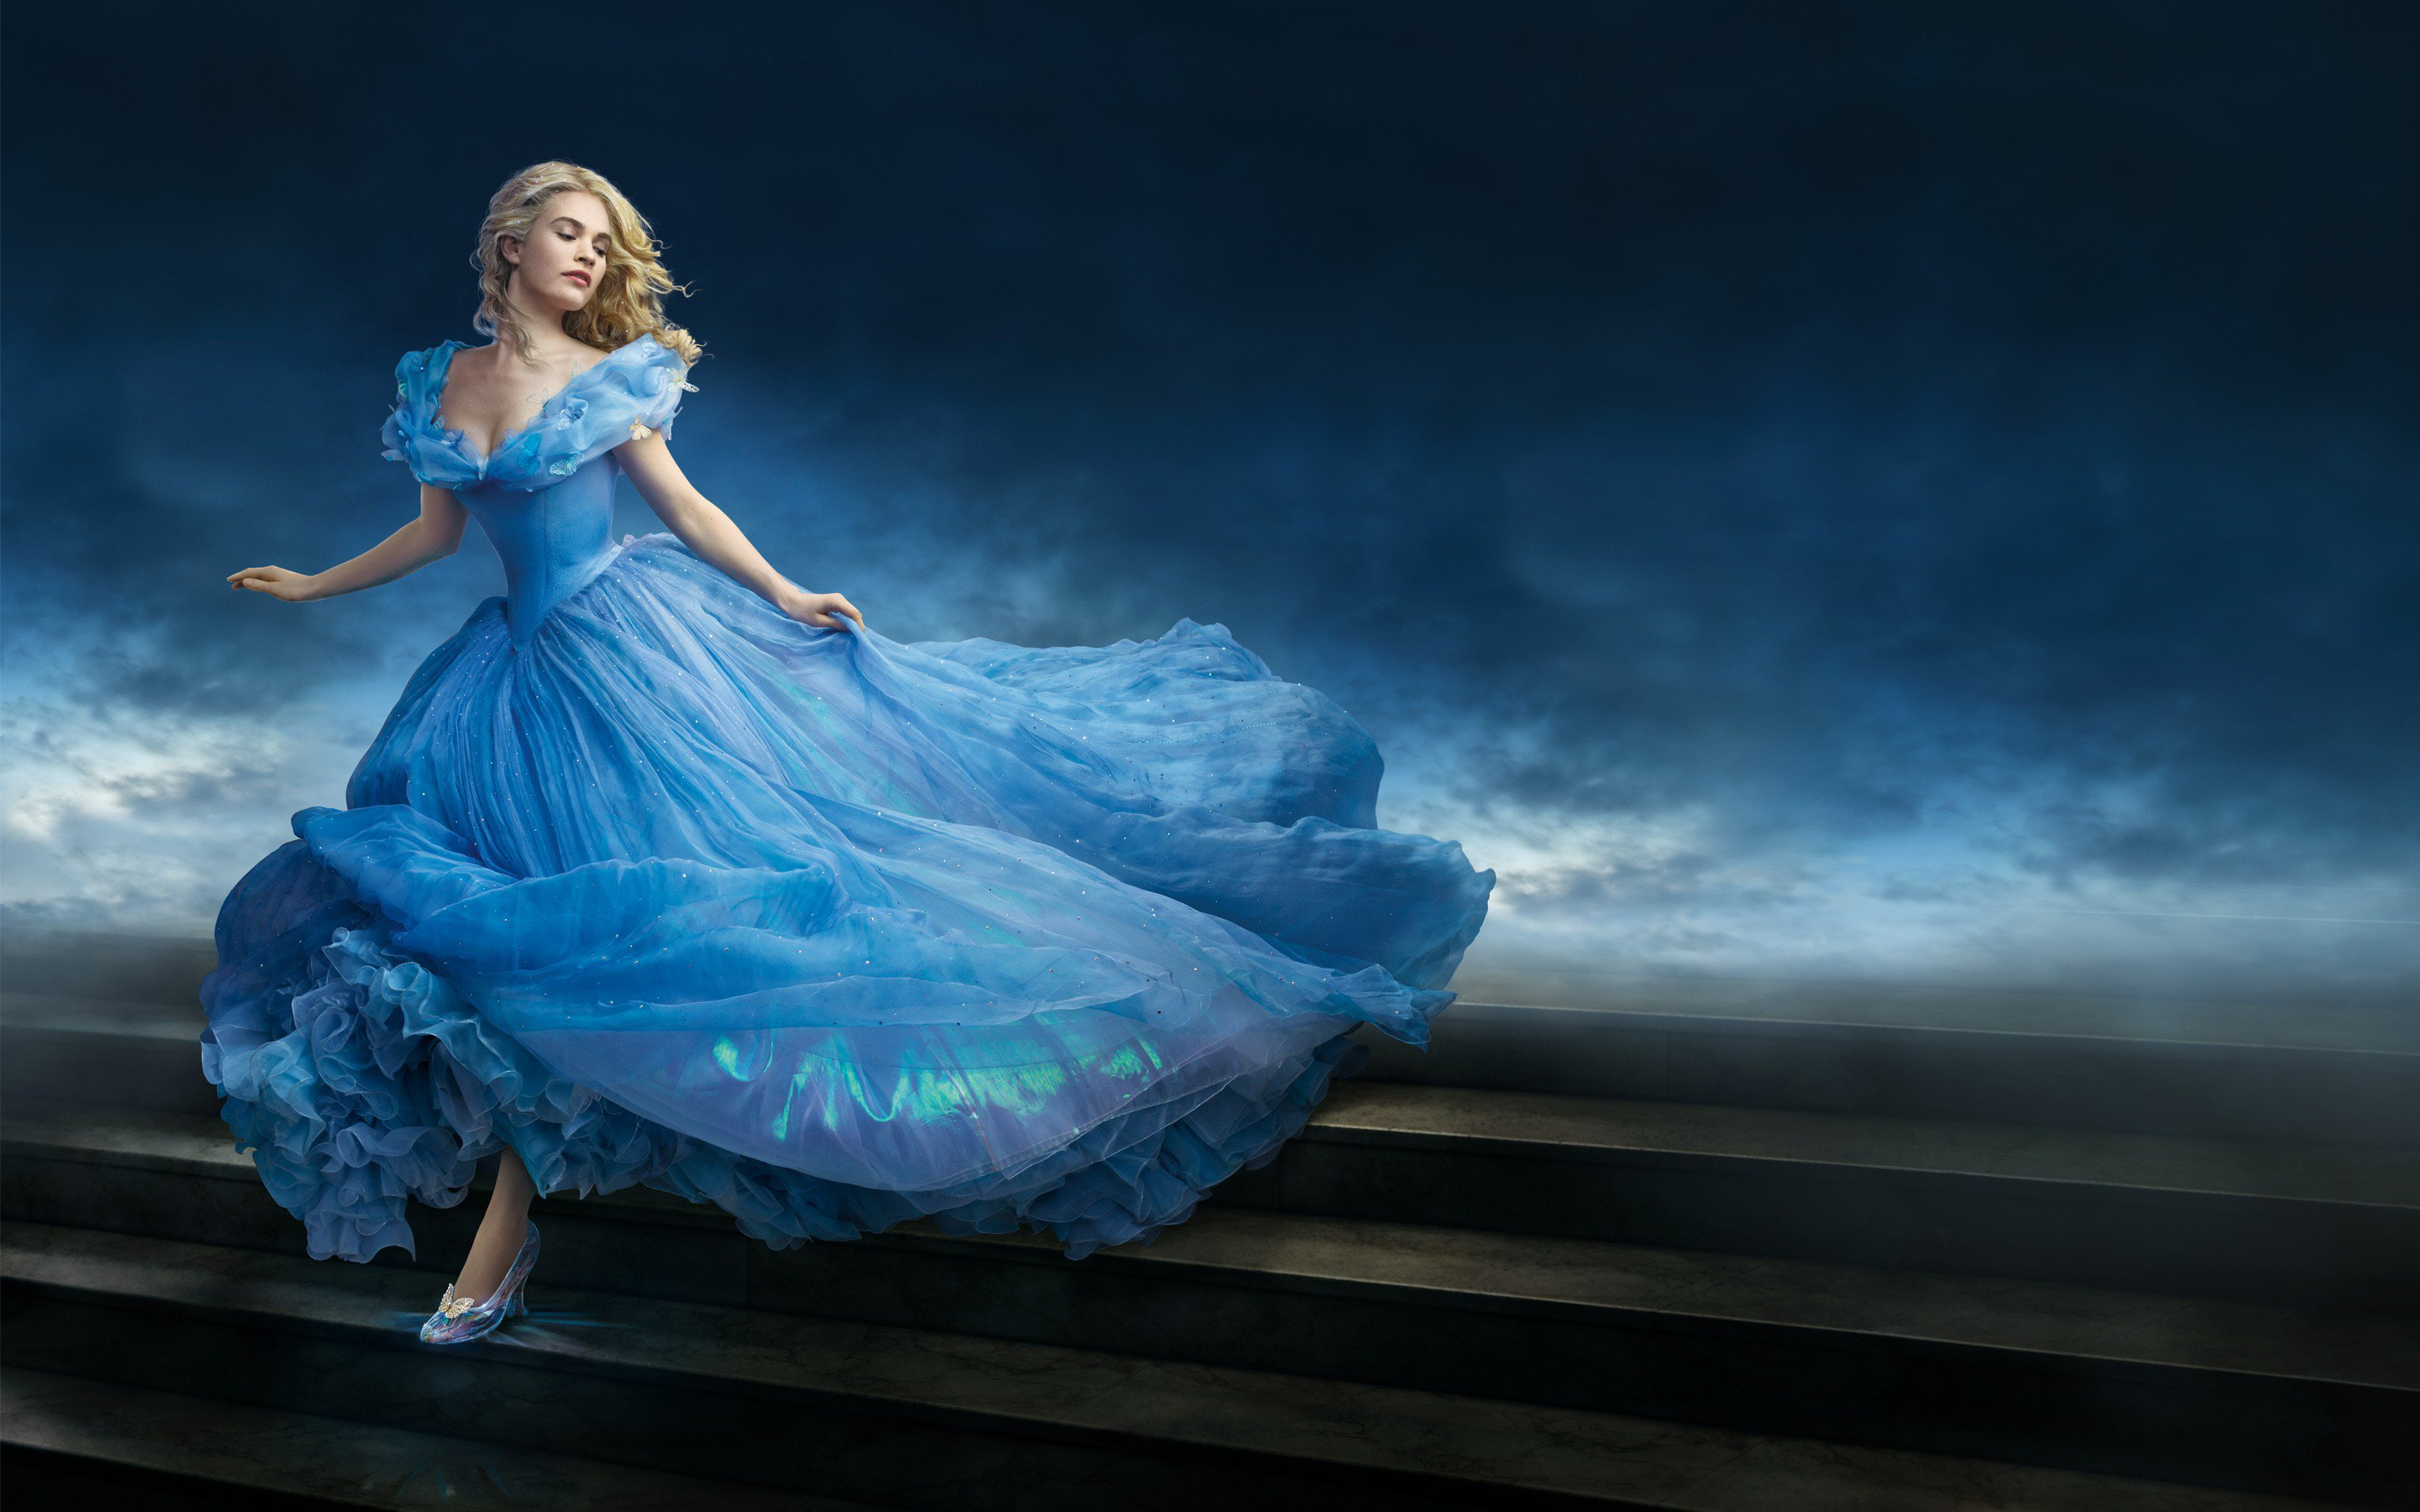 cinderella movie wallpaper background 52213